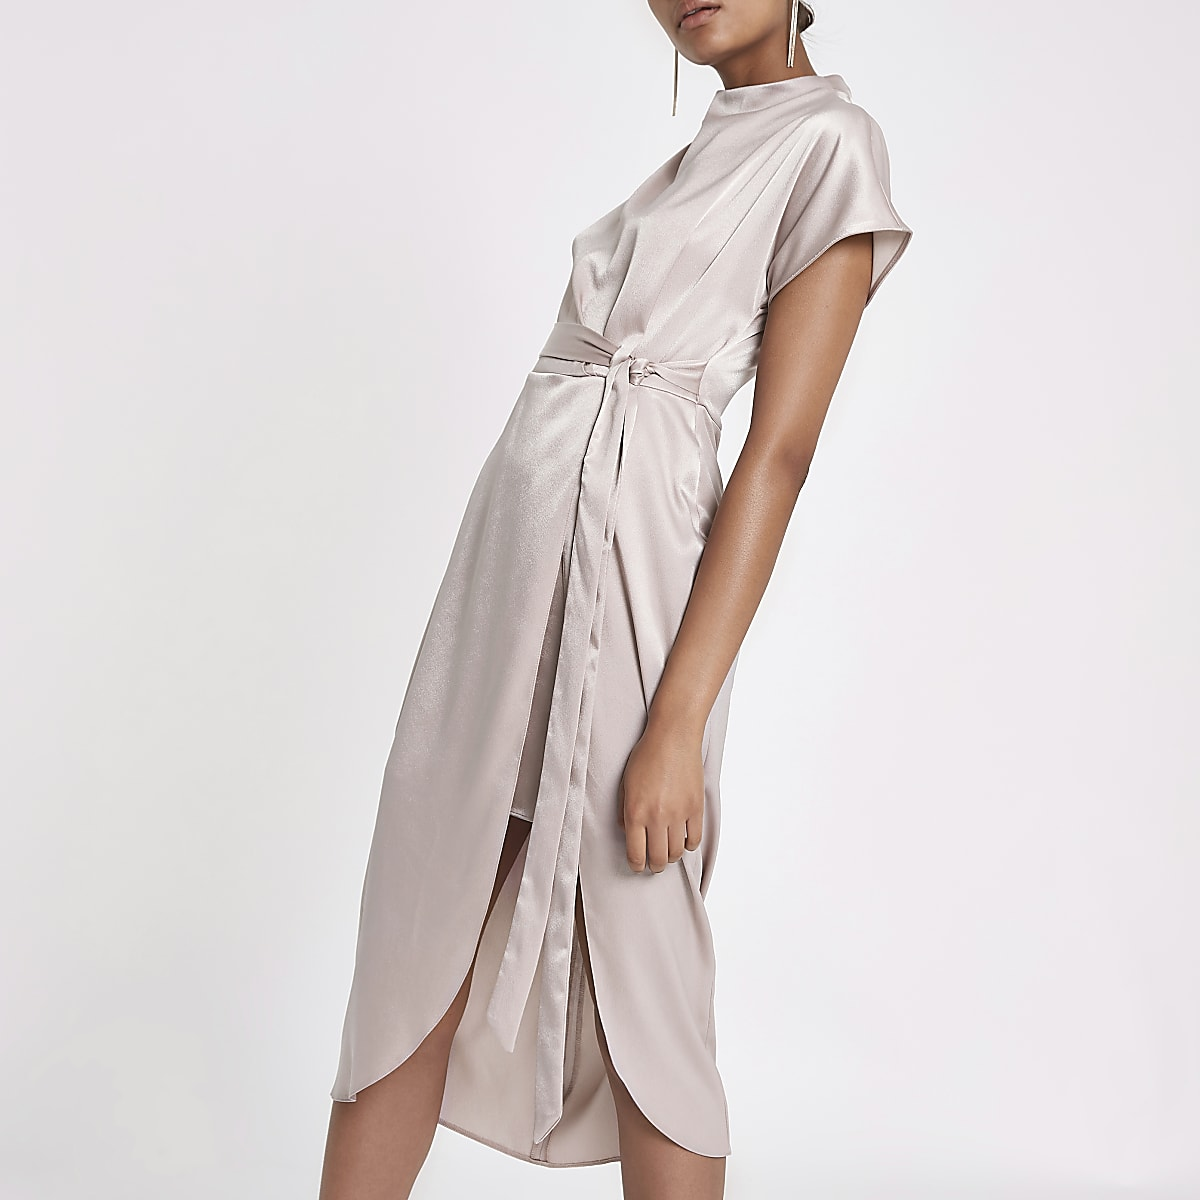 Beige pink satin tie waist dress